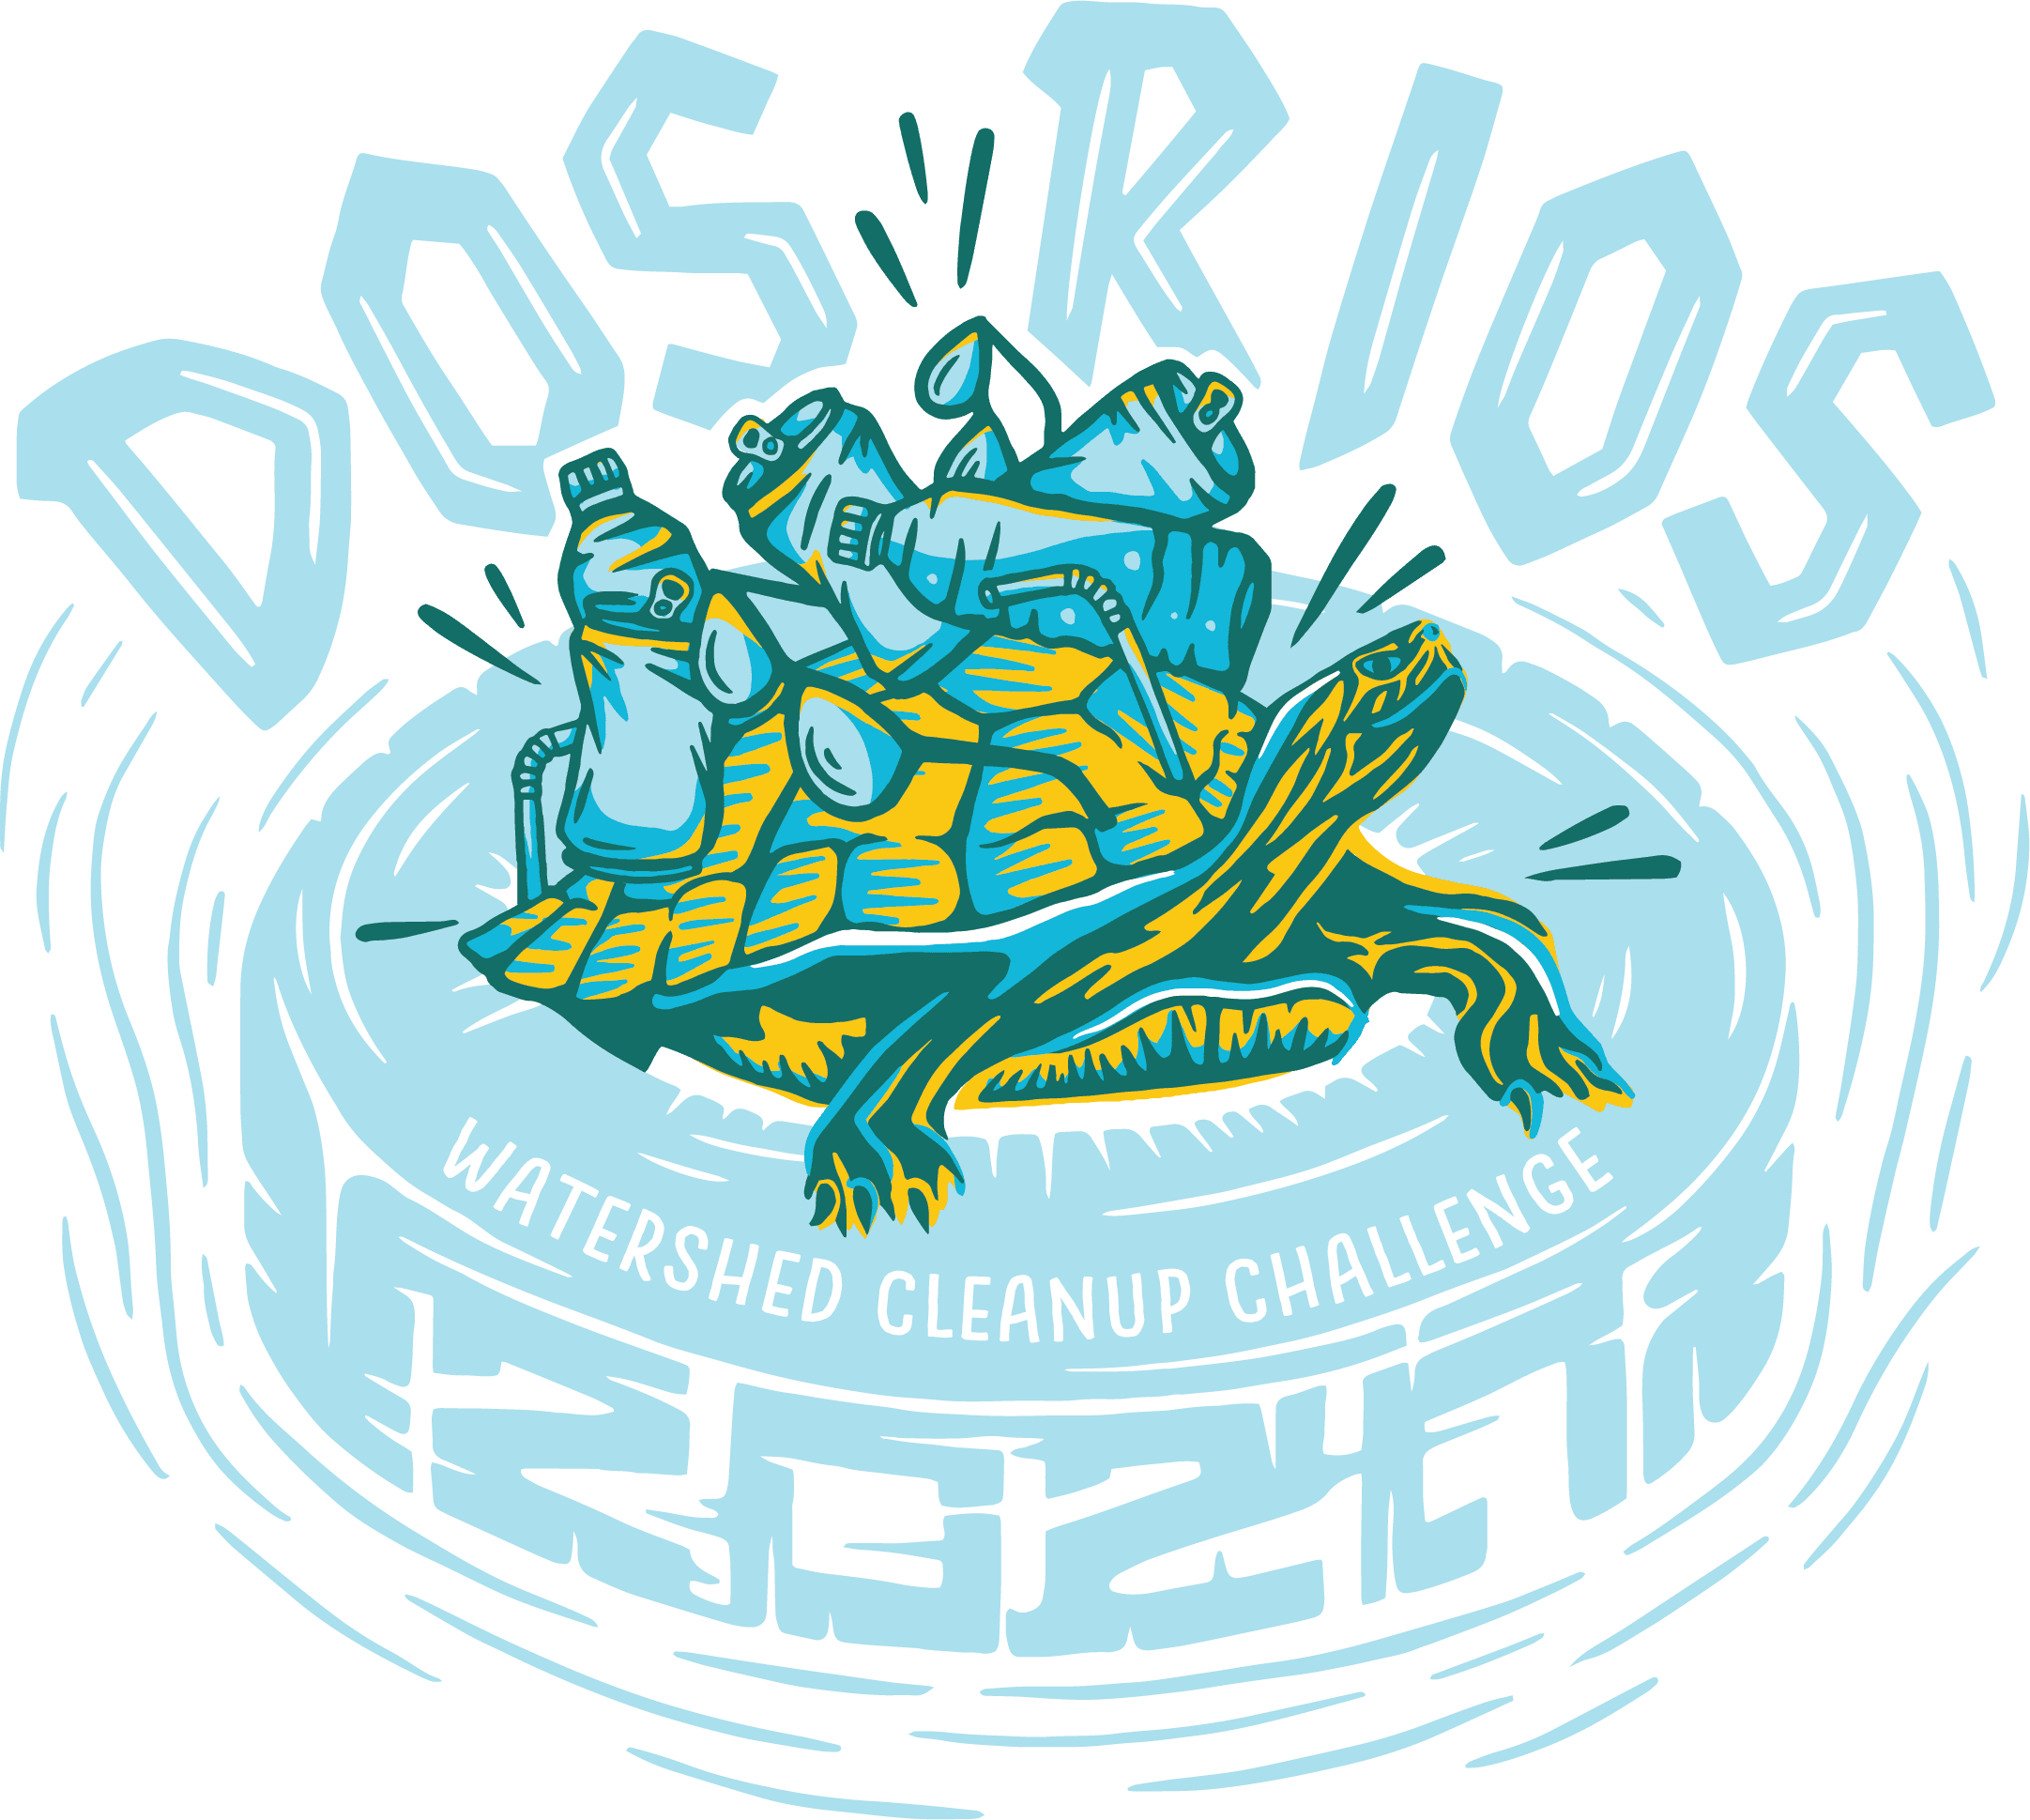 dos rios challenge logo Opens in new window